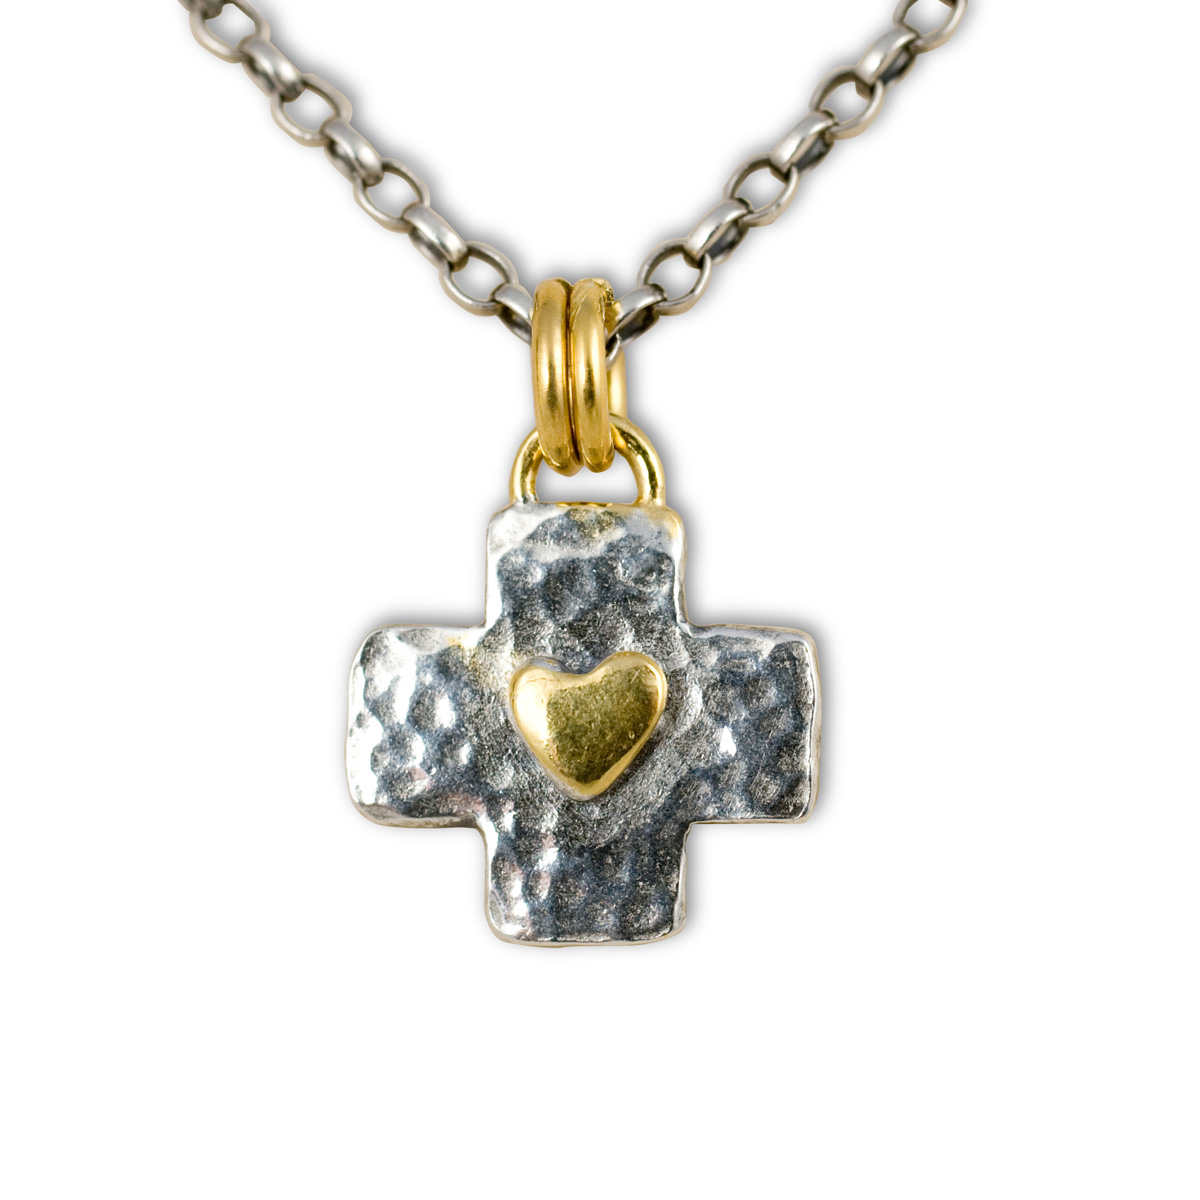 star s pendant carolina inch pin square necklace sparkling sterling with cross silver women size glamour pattern collection